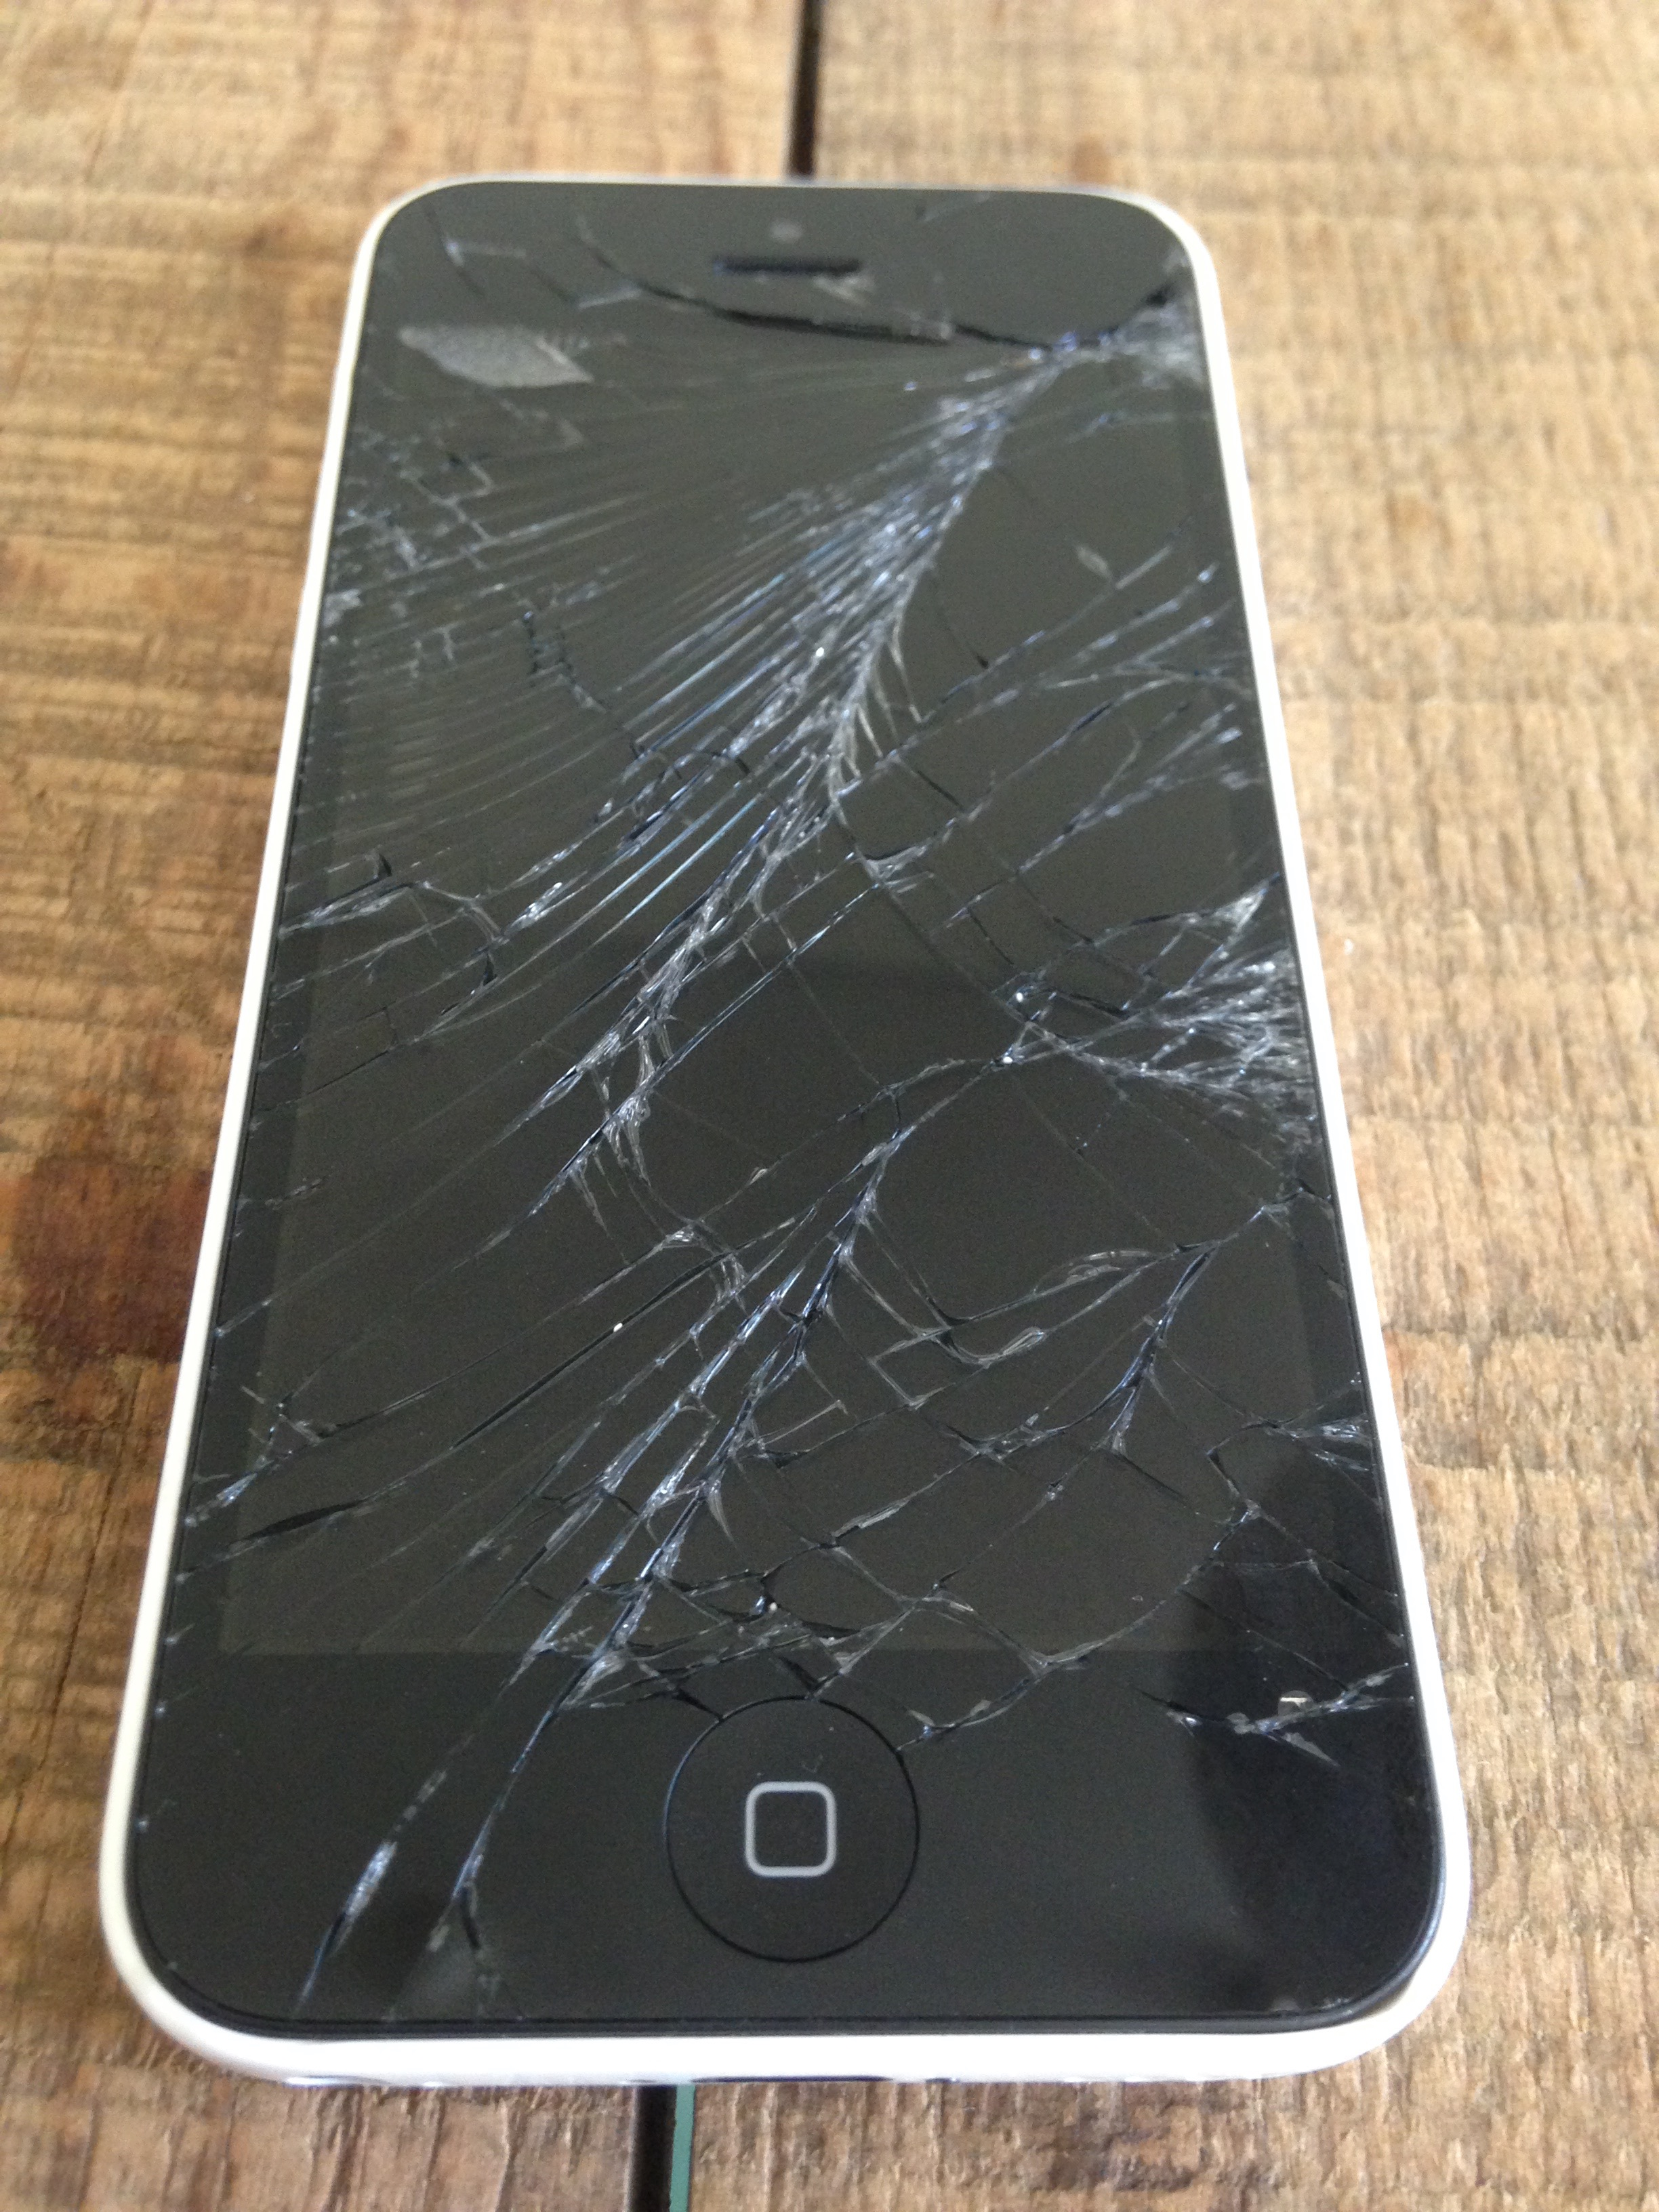 Oh No! Where can I repair my broken iPhone screen in Dubai?